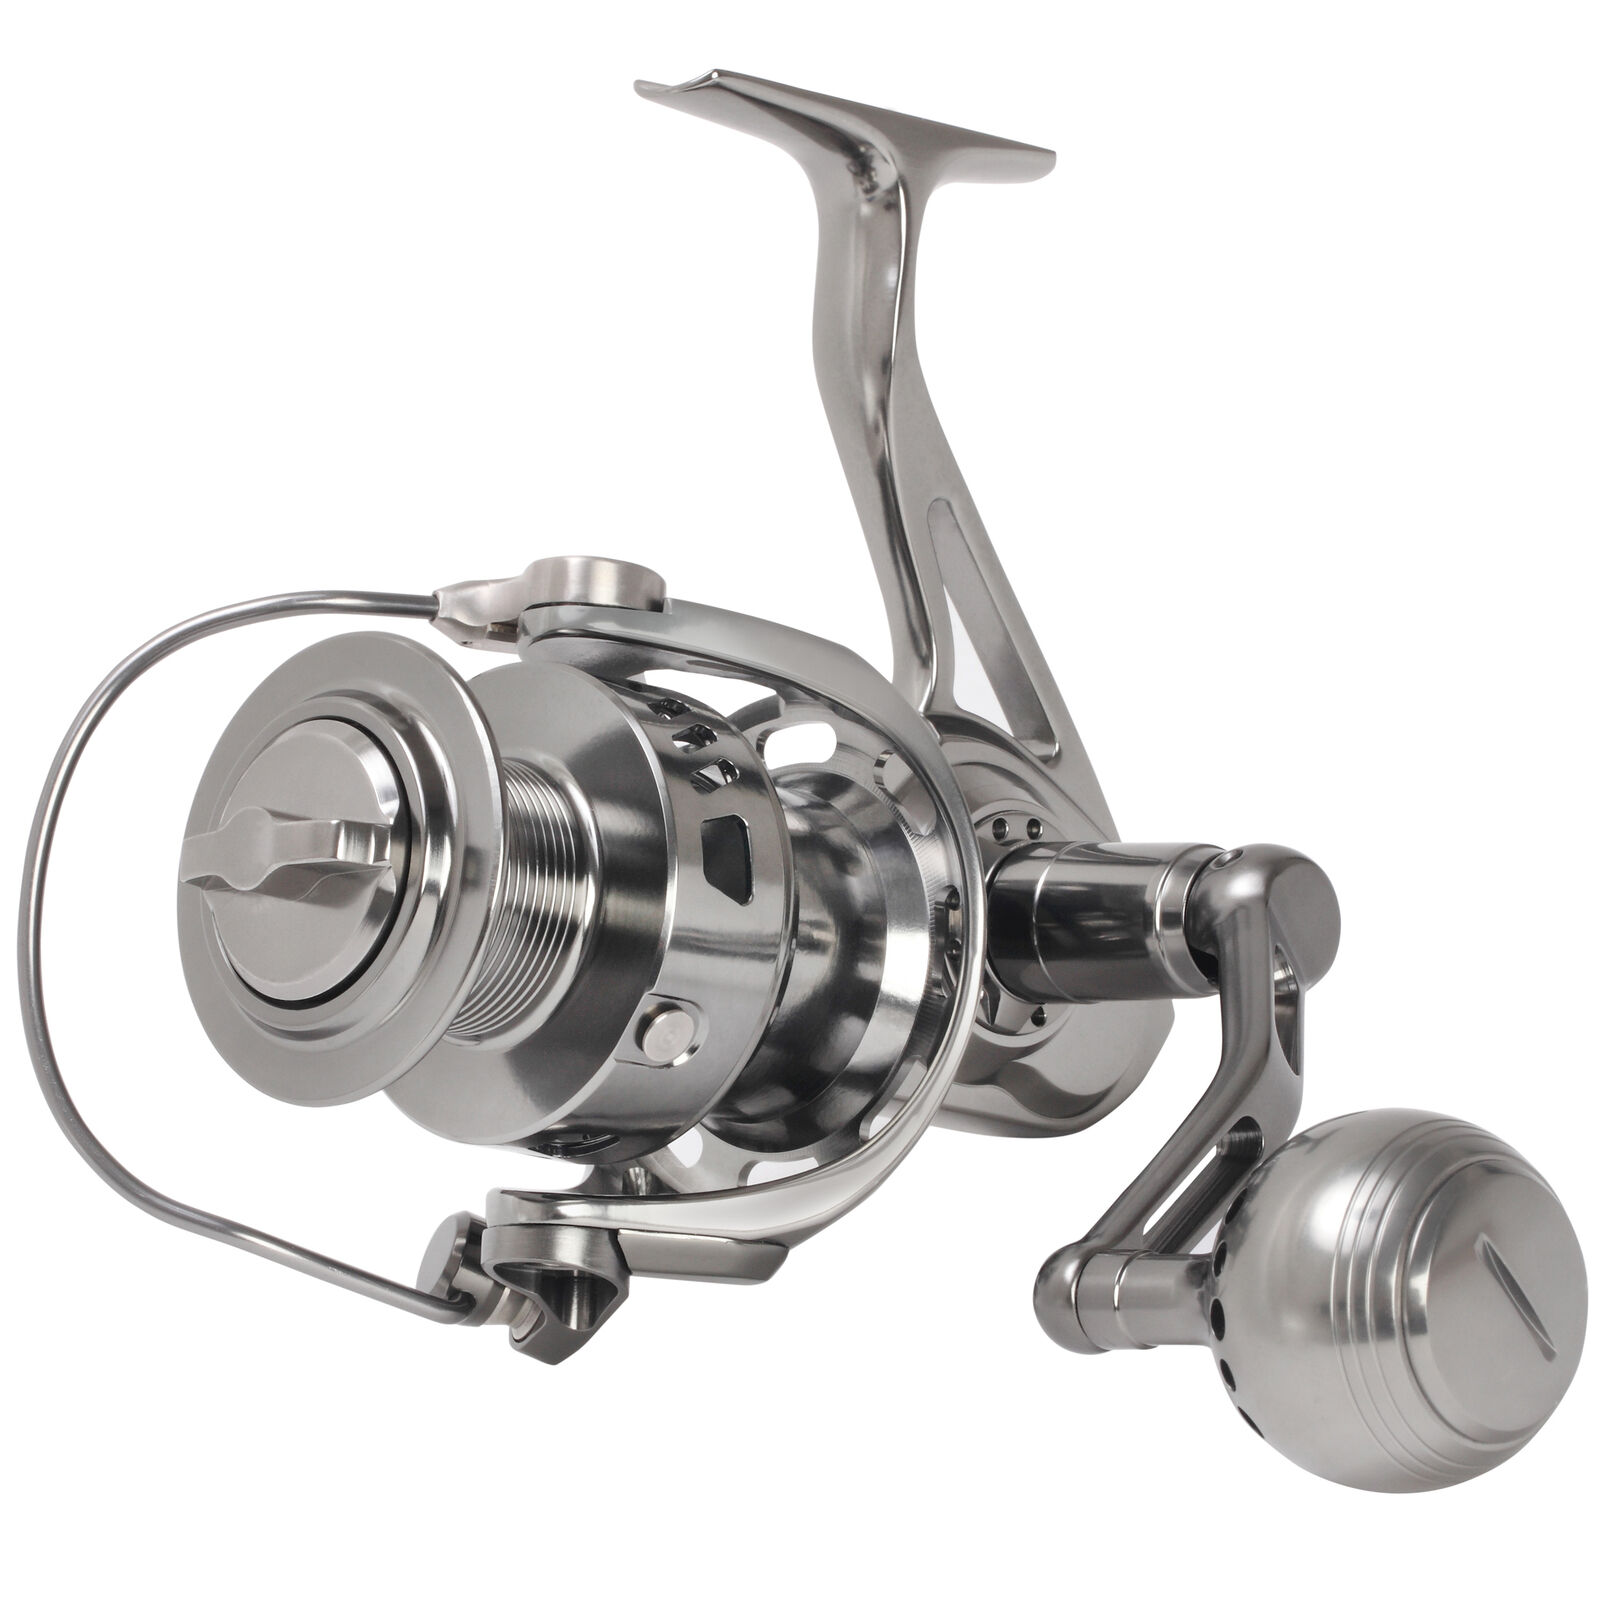 CNC MA NED  POWERFUL FULL METAL SPINNING FISHING REEL 20KG 44LB DRAG  store sale outlet